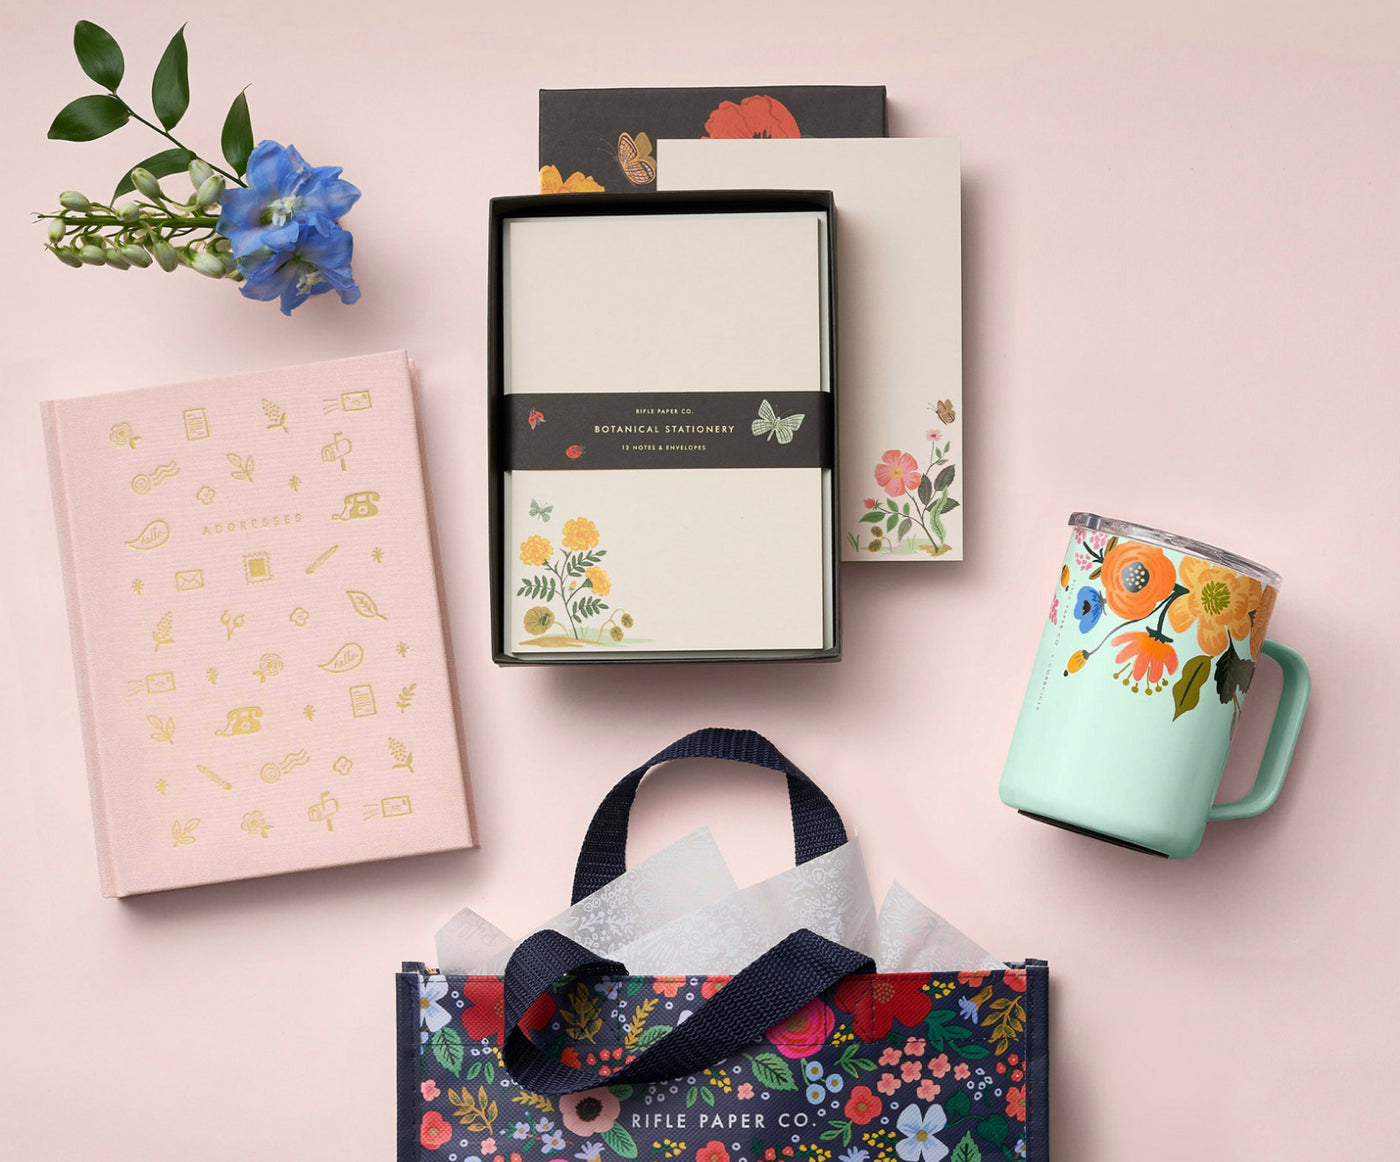 Rifle Paper Co. Greeting Cards & Stationery